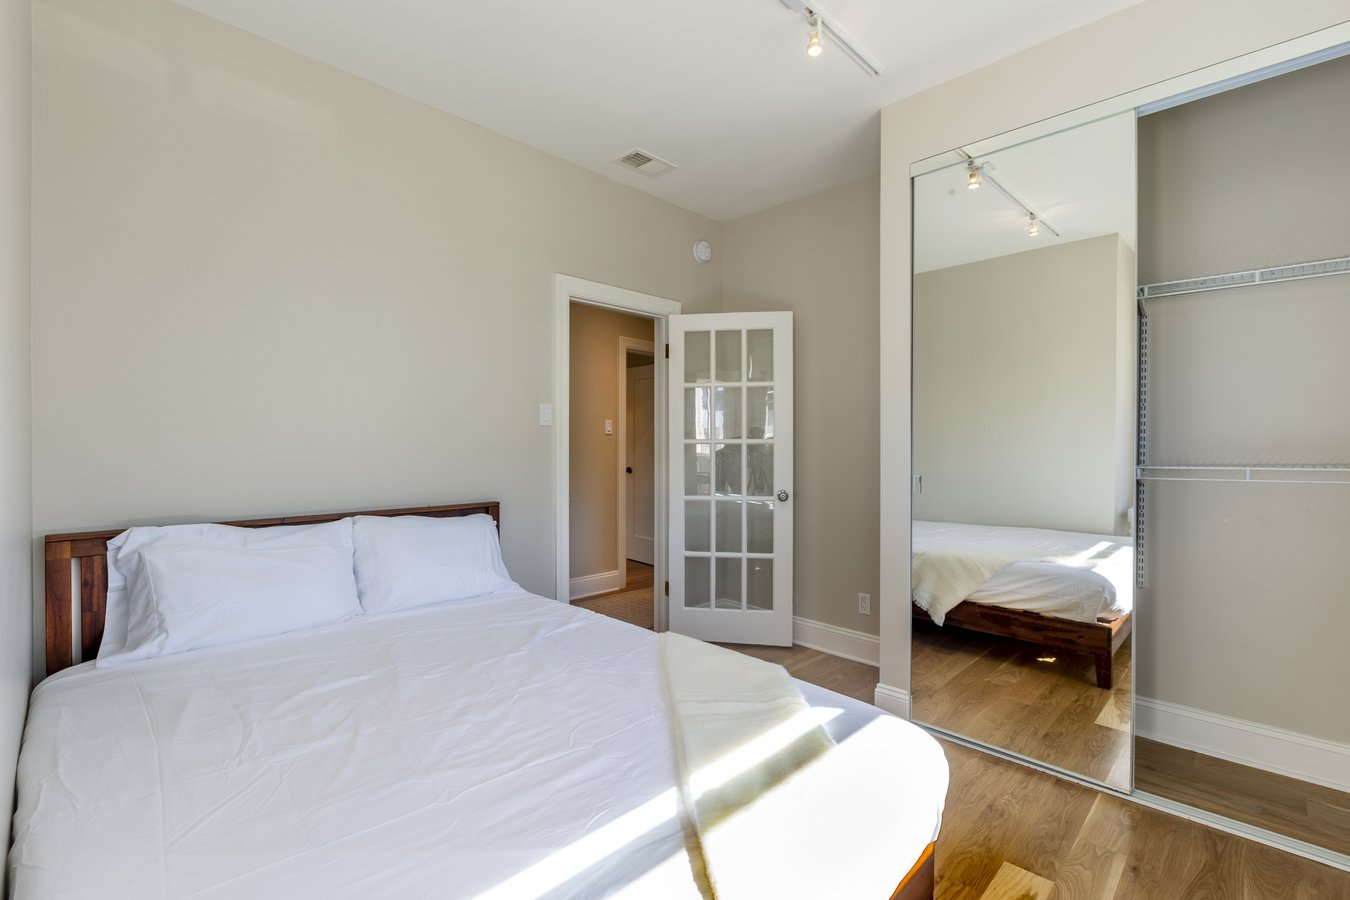 1 Bedroom 1 Bathroom House for rent at 14Th Ave & Fulton St Coliving in San Francisco, CA